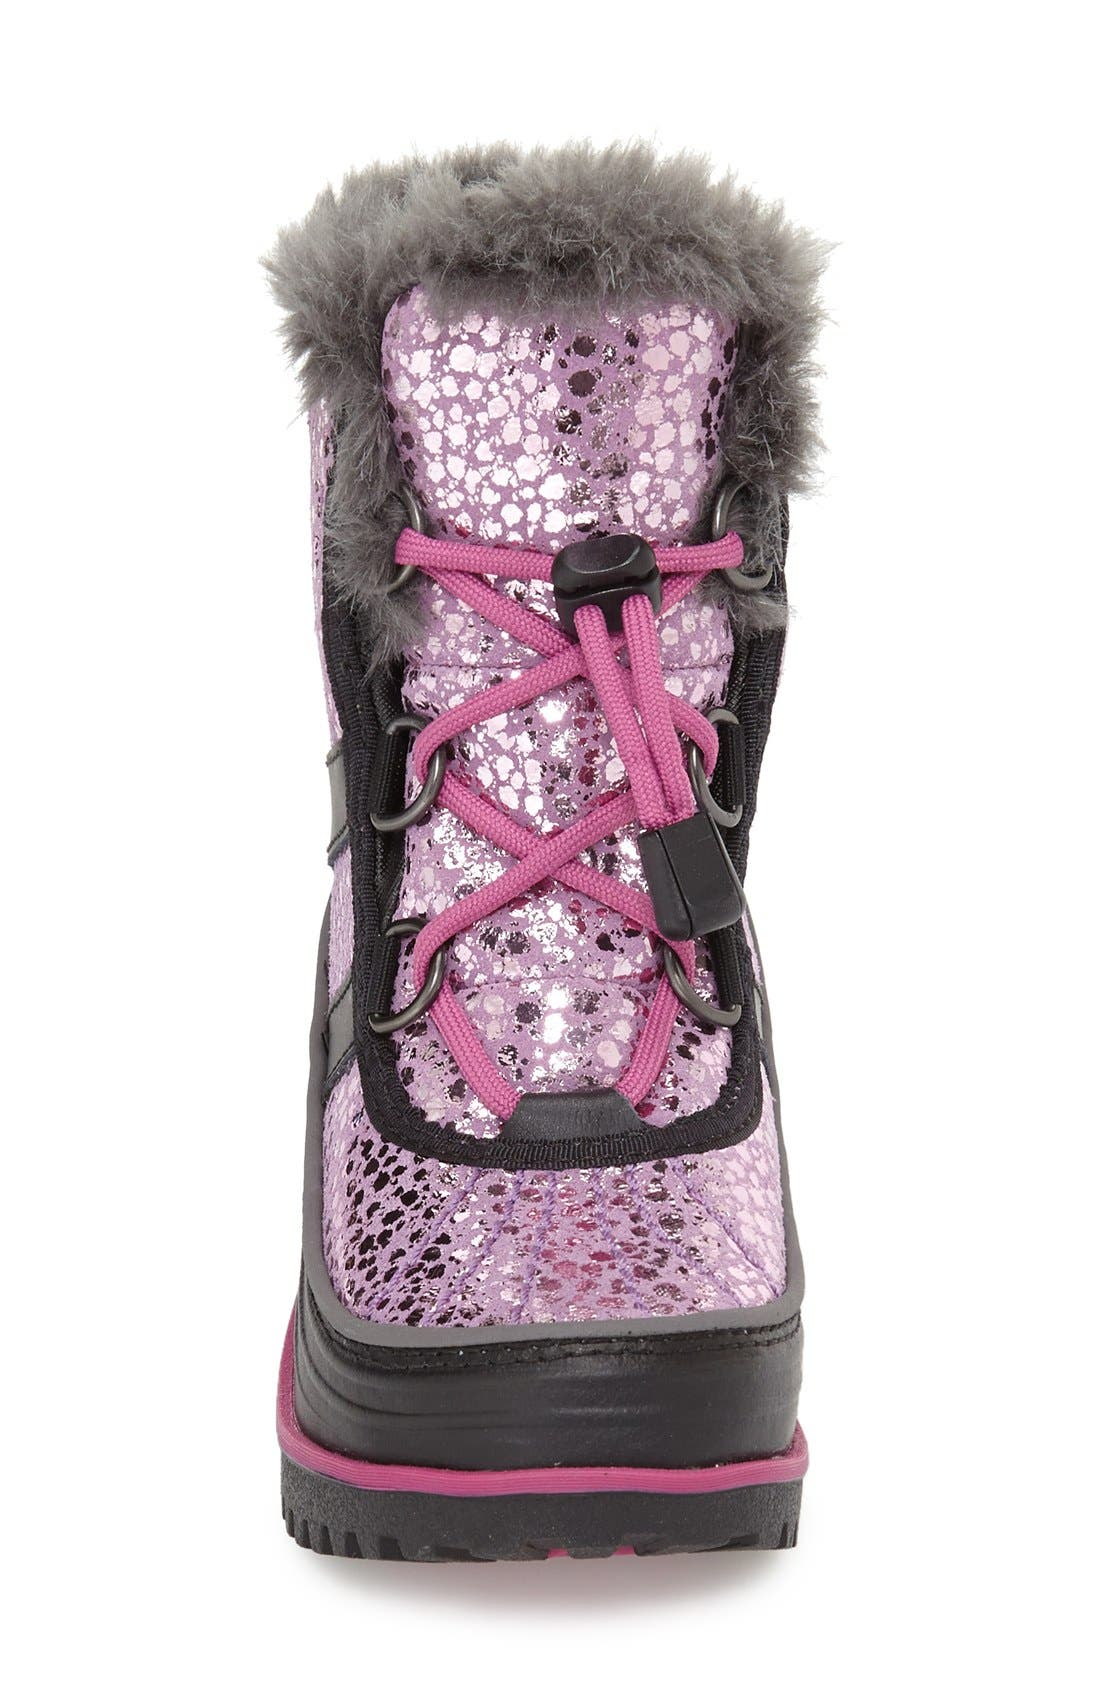 Alternate Image 3  - SOREL 'Tivoli II' Waterproof Snow Boot (Toddler & Little Kid)